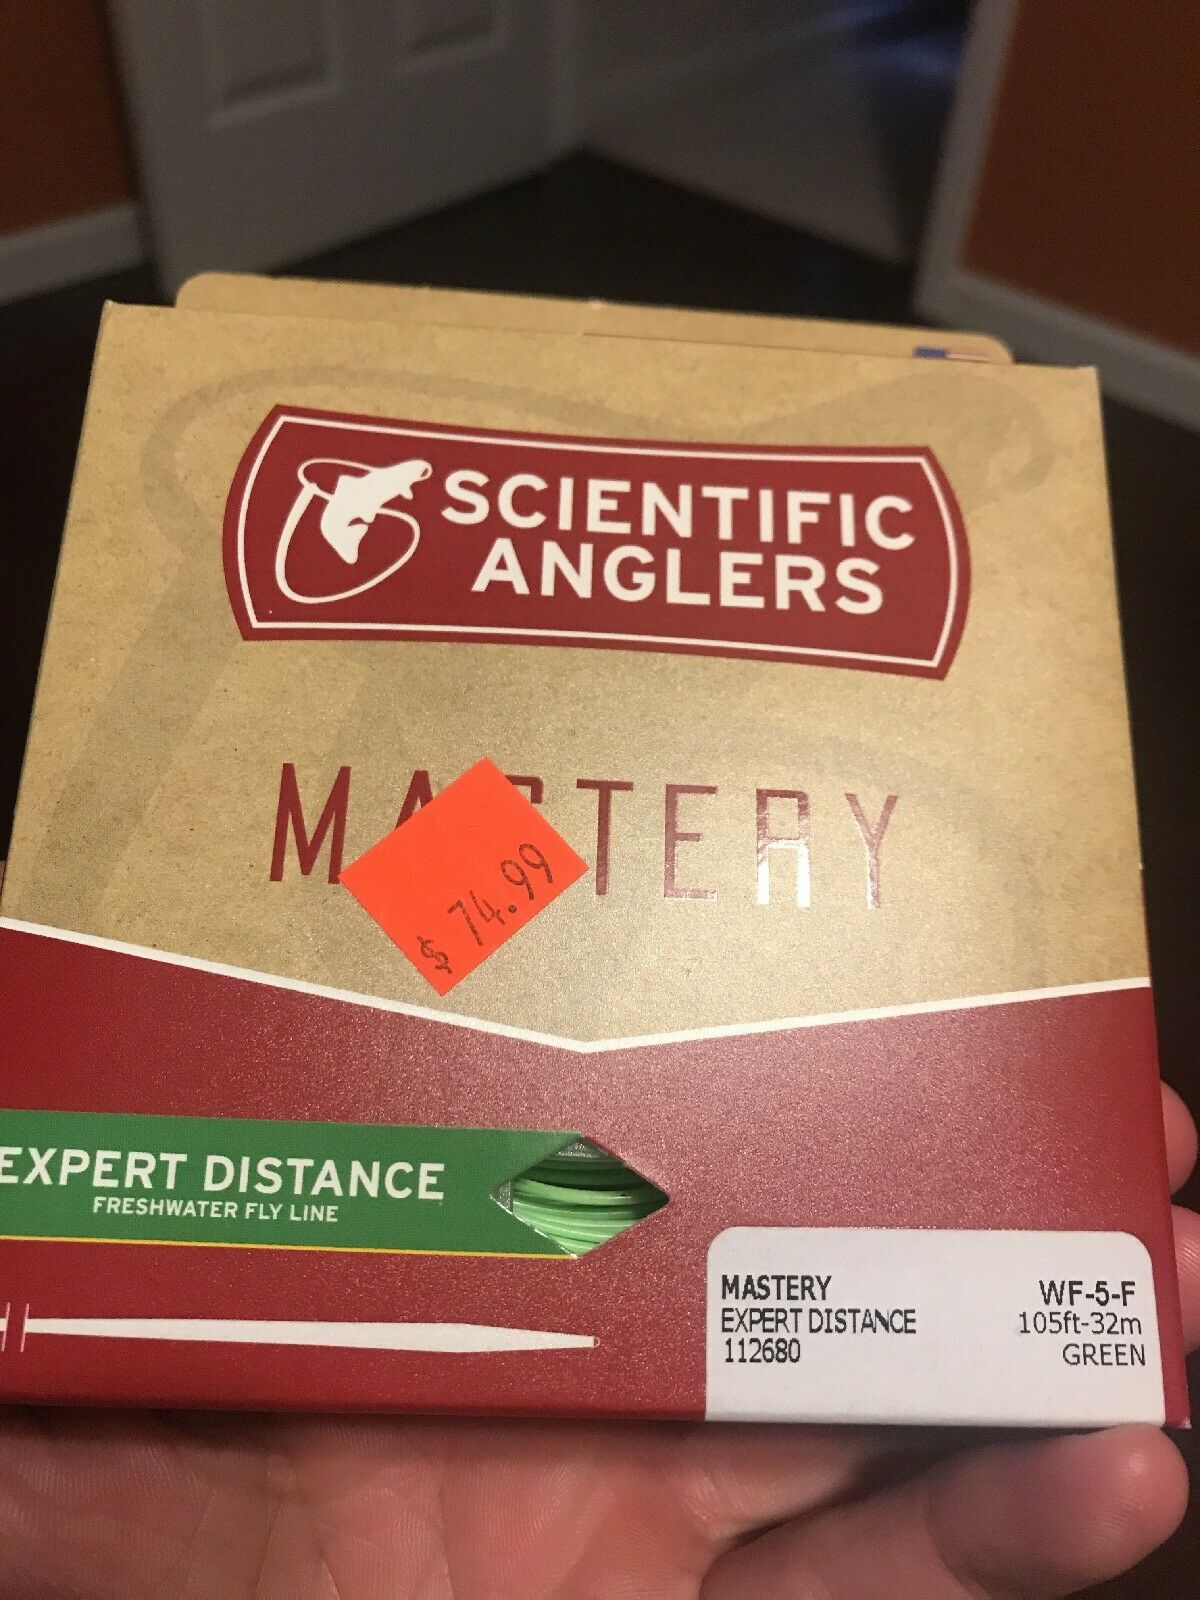 SCIENTIFIC ANGLERS MASTERY EXPERT DISTANCE WF5F  5 WEIGHT FLY LINE IN verde